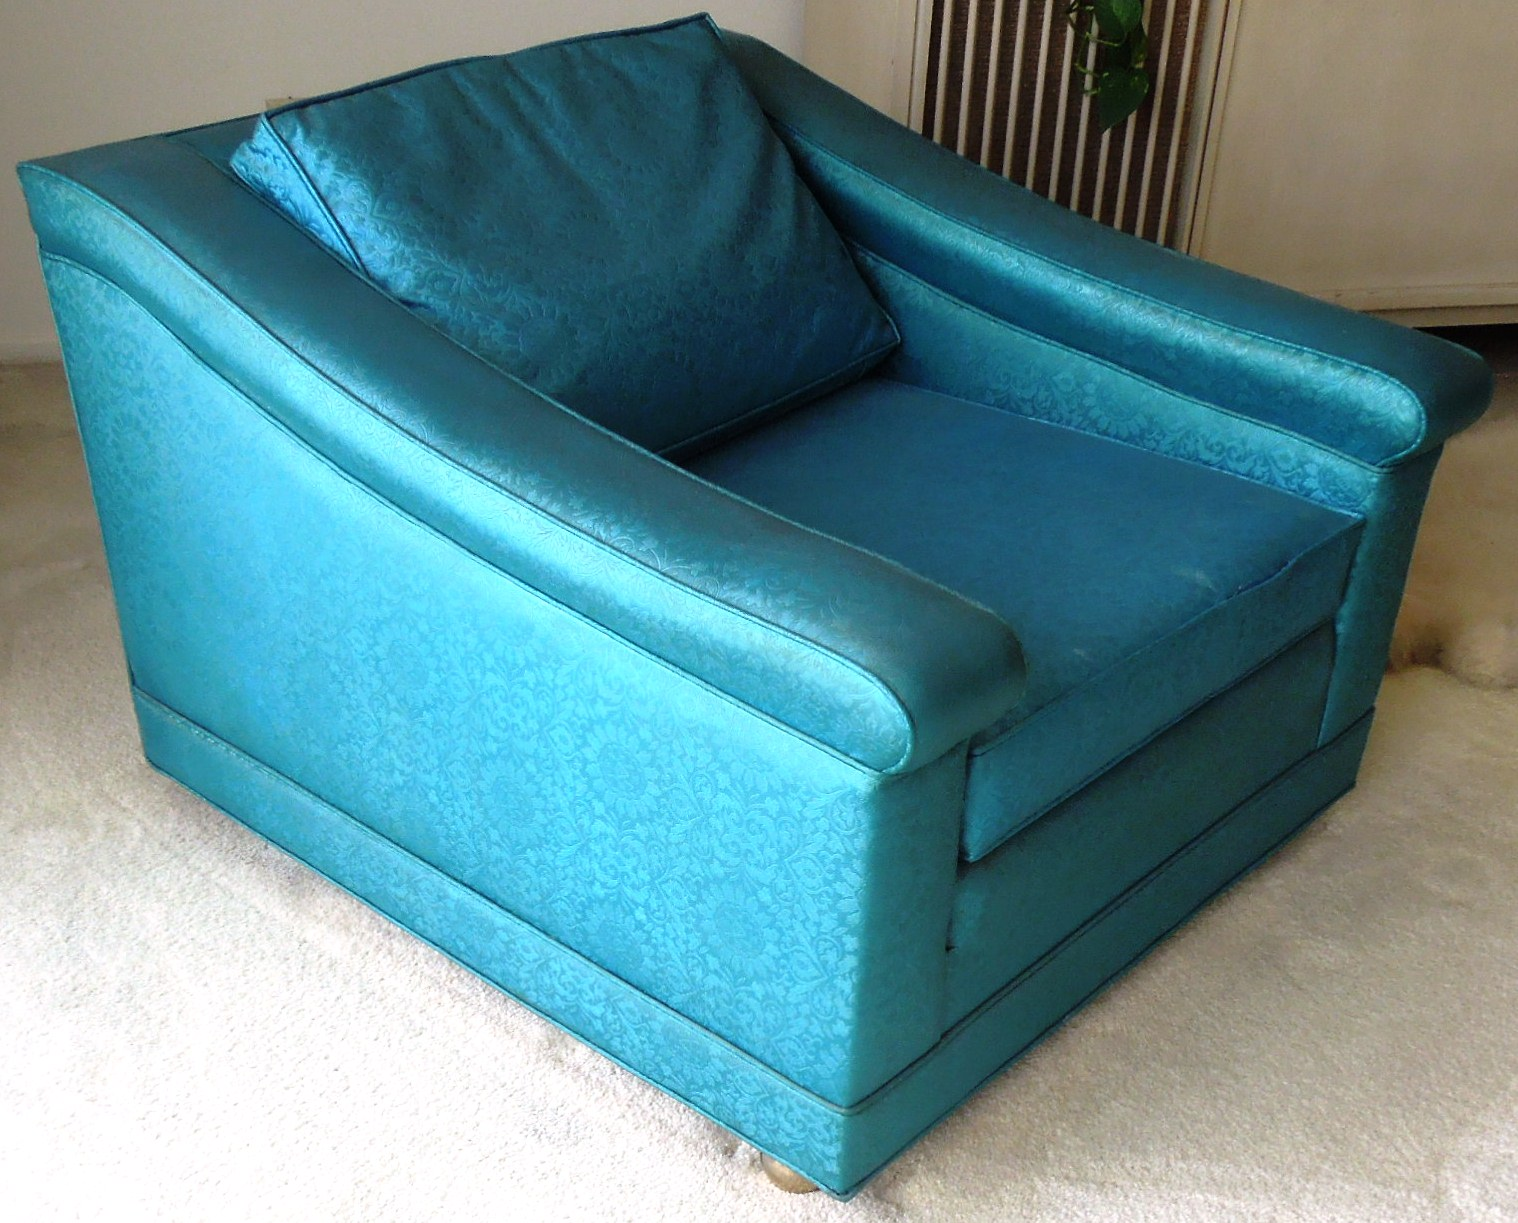 Vintage 1960s luxury lounge chair vinyl blue color for for 80s furniture for sale